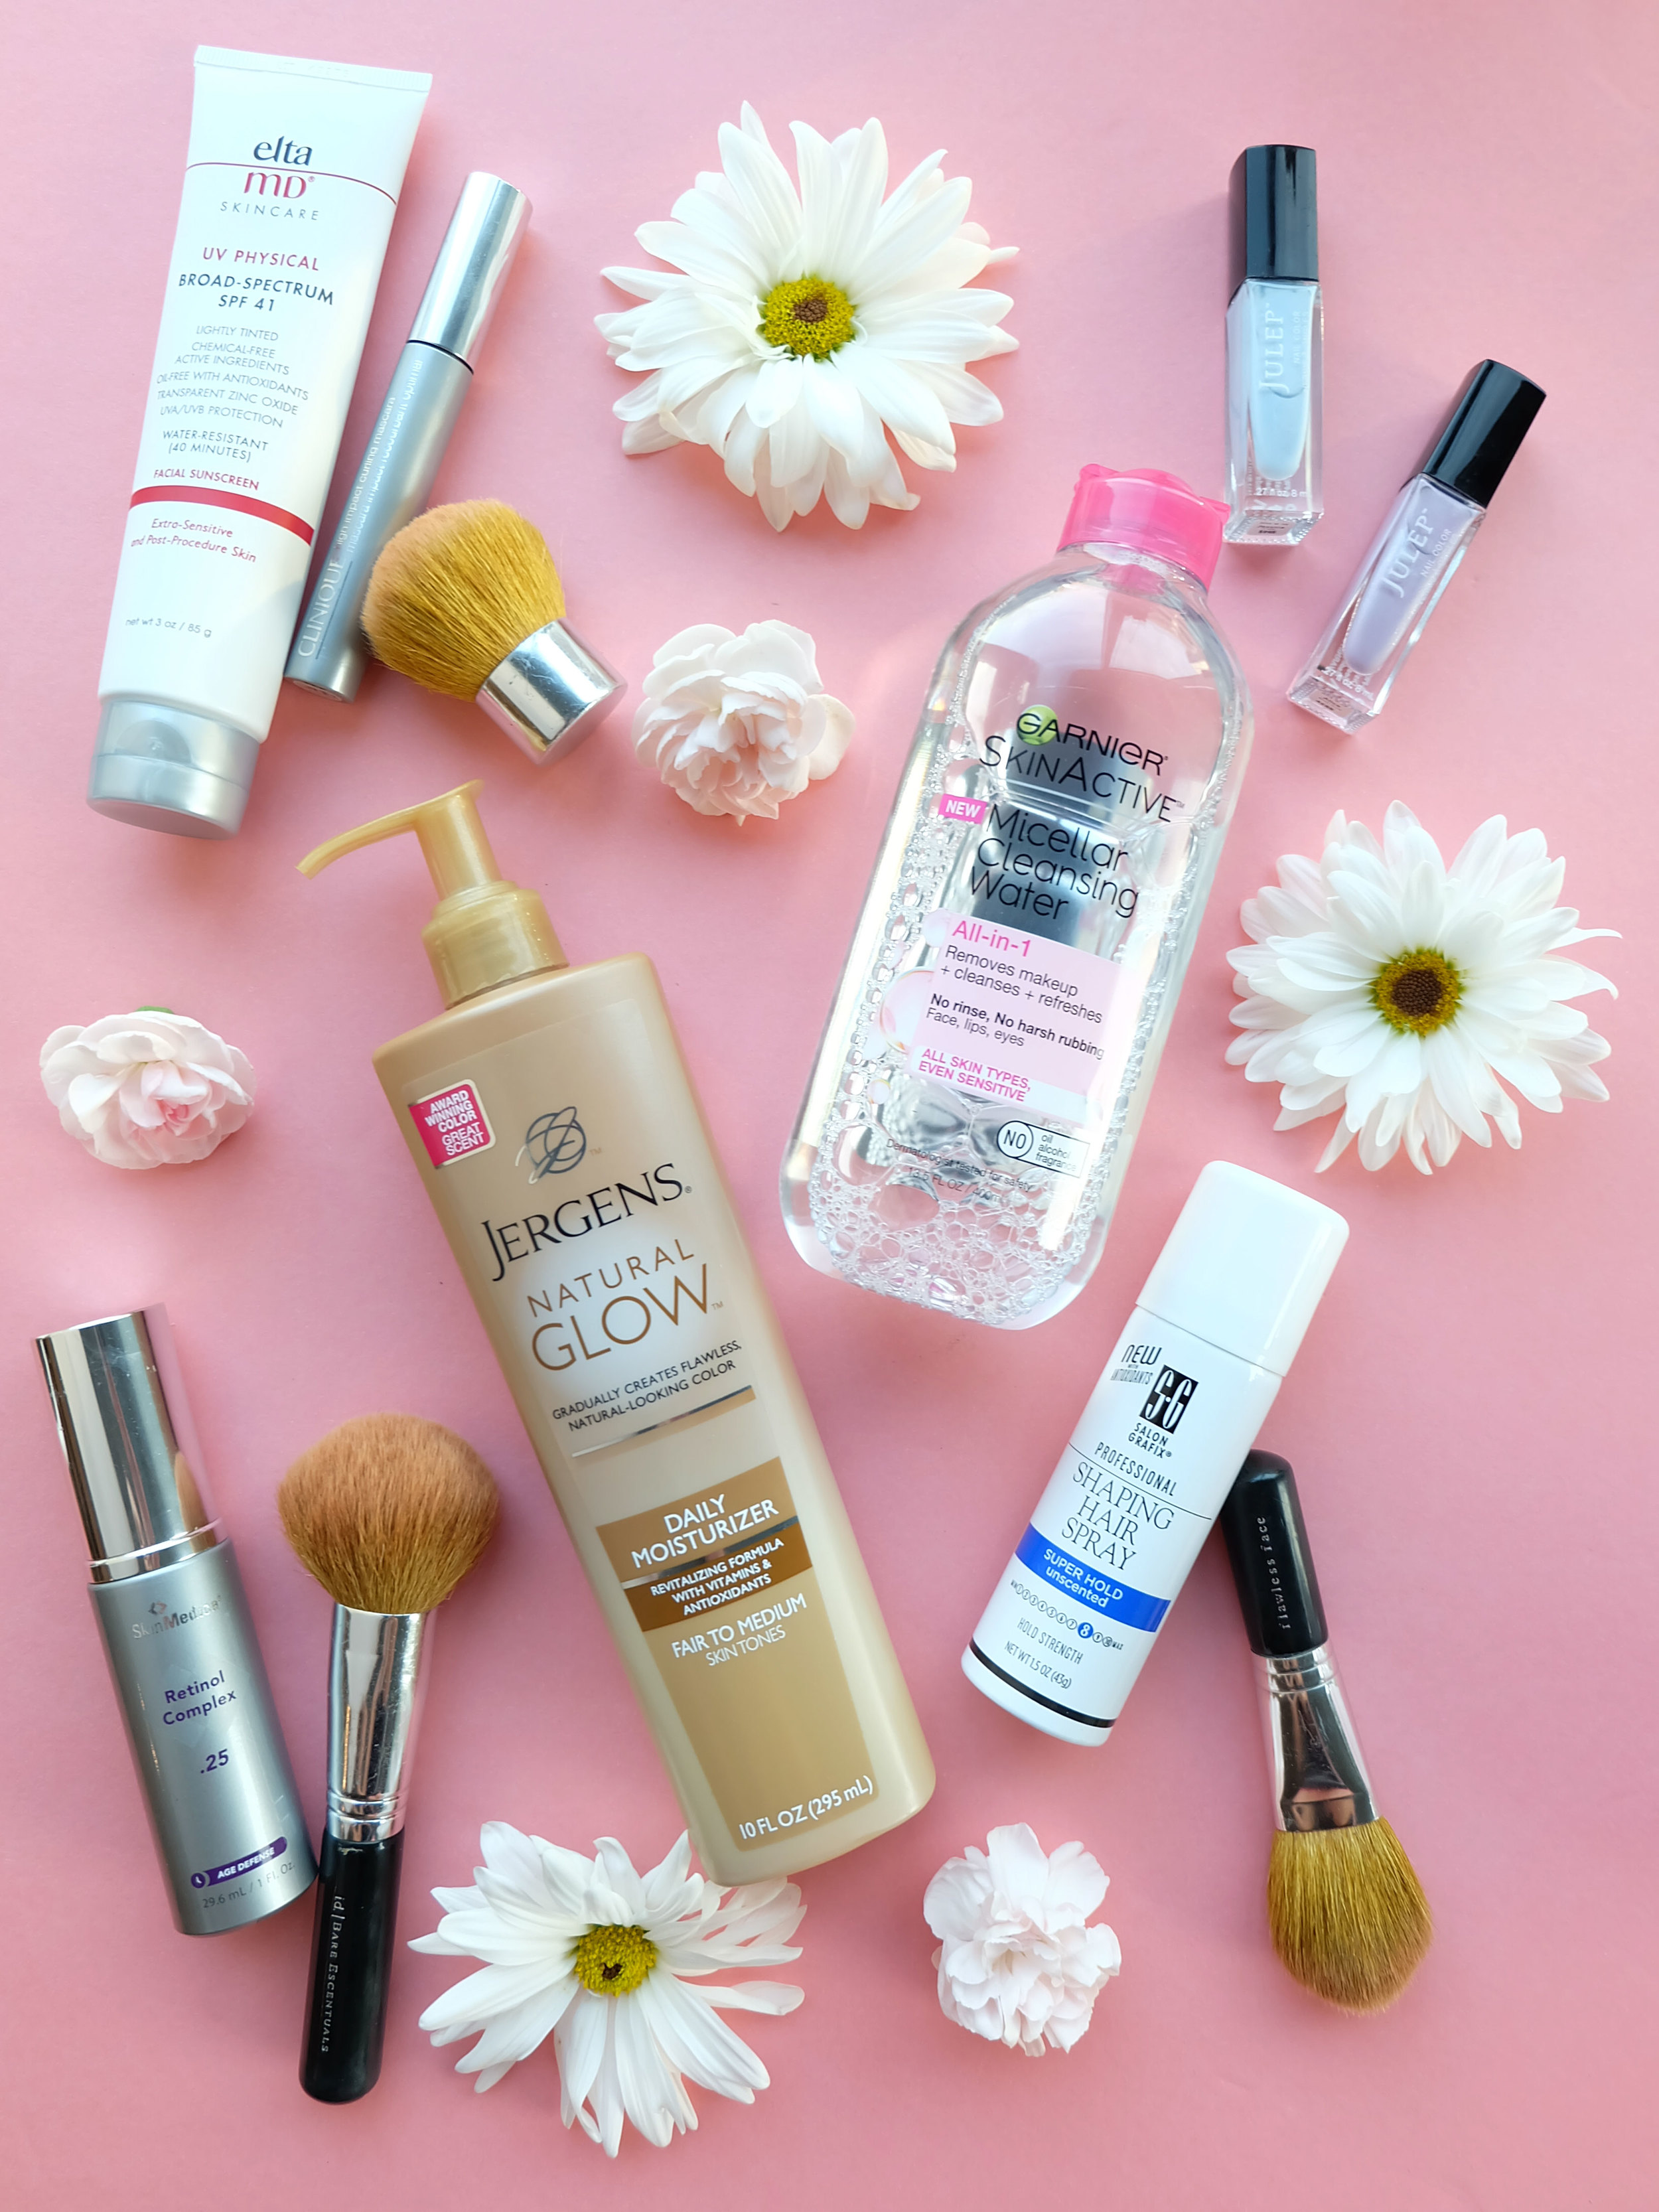 Beauty products with Amazon Prime benefits (free 2 day shipping!), My favorite part of my nightly routine, and more!